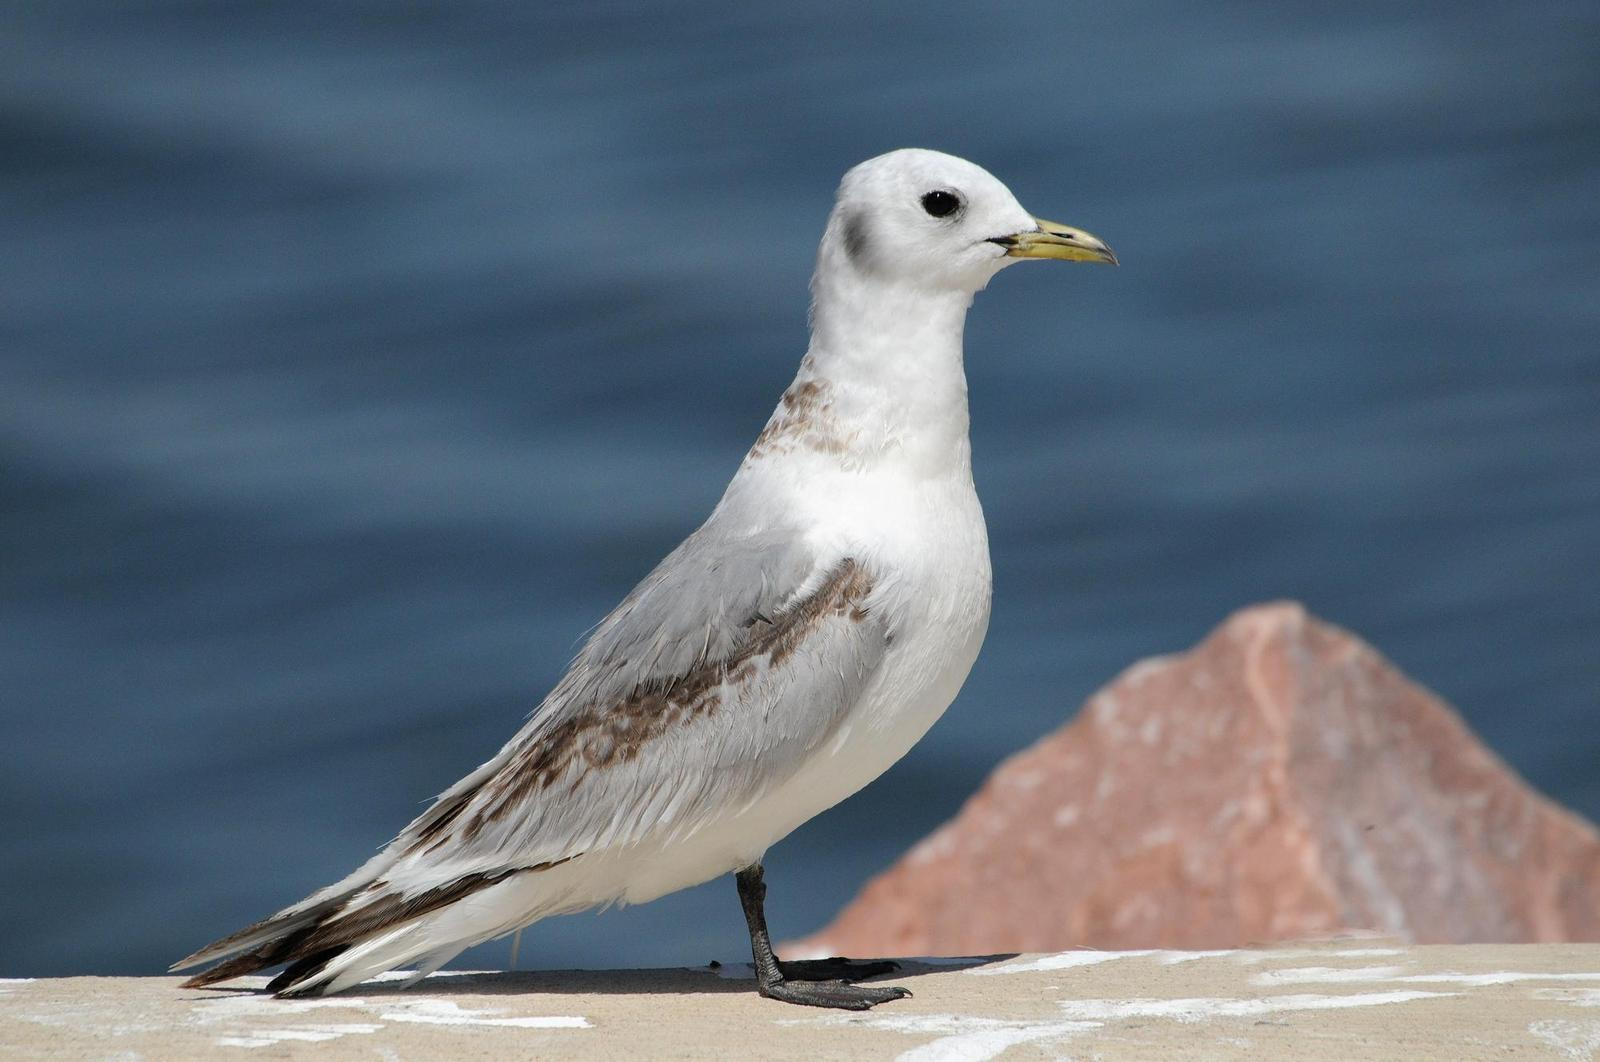 Black-legged Kittiwake Photo by Steven Mlodinow